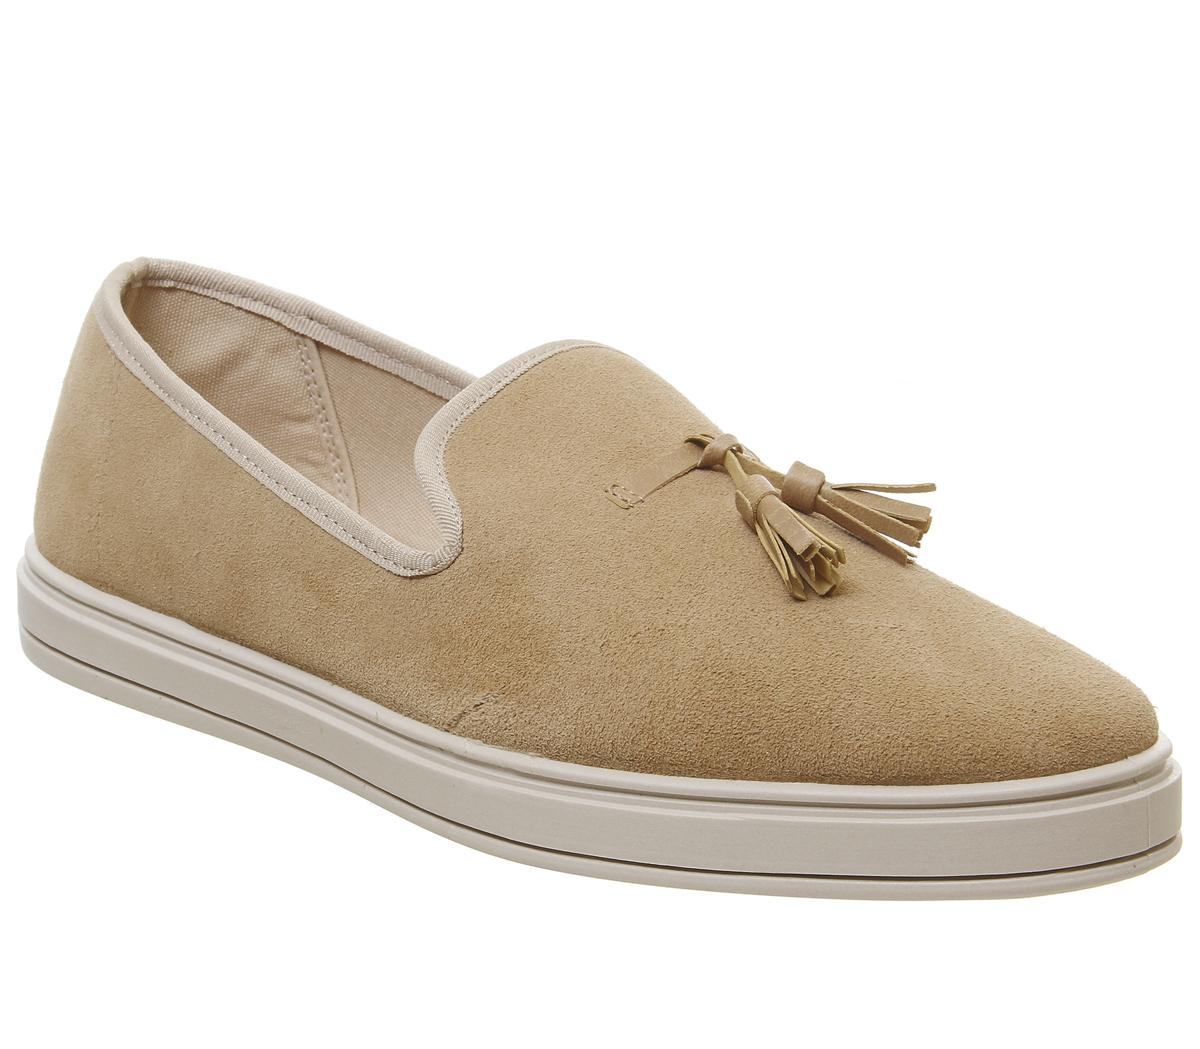 Mens Office Havana Slip On Tassel Loafer Beige Suede